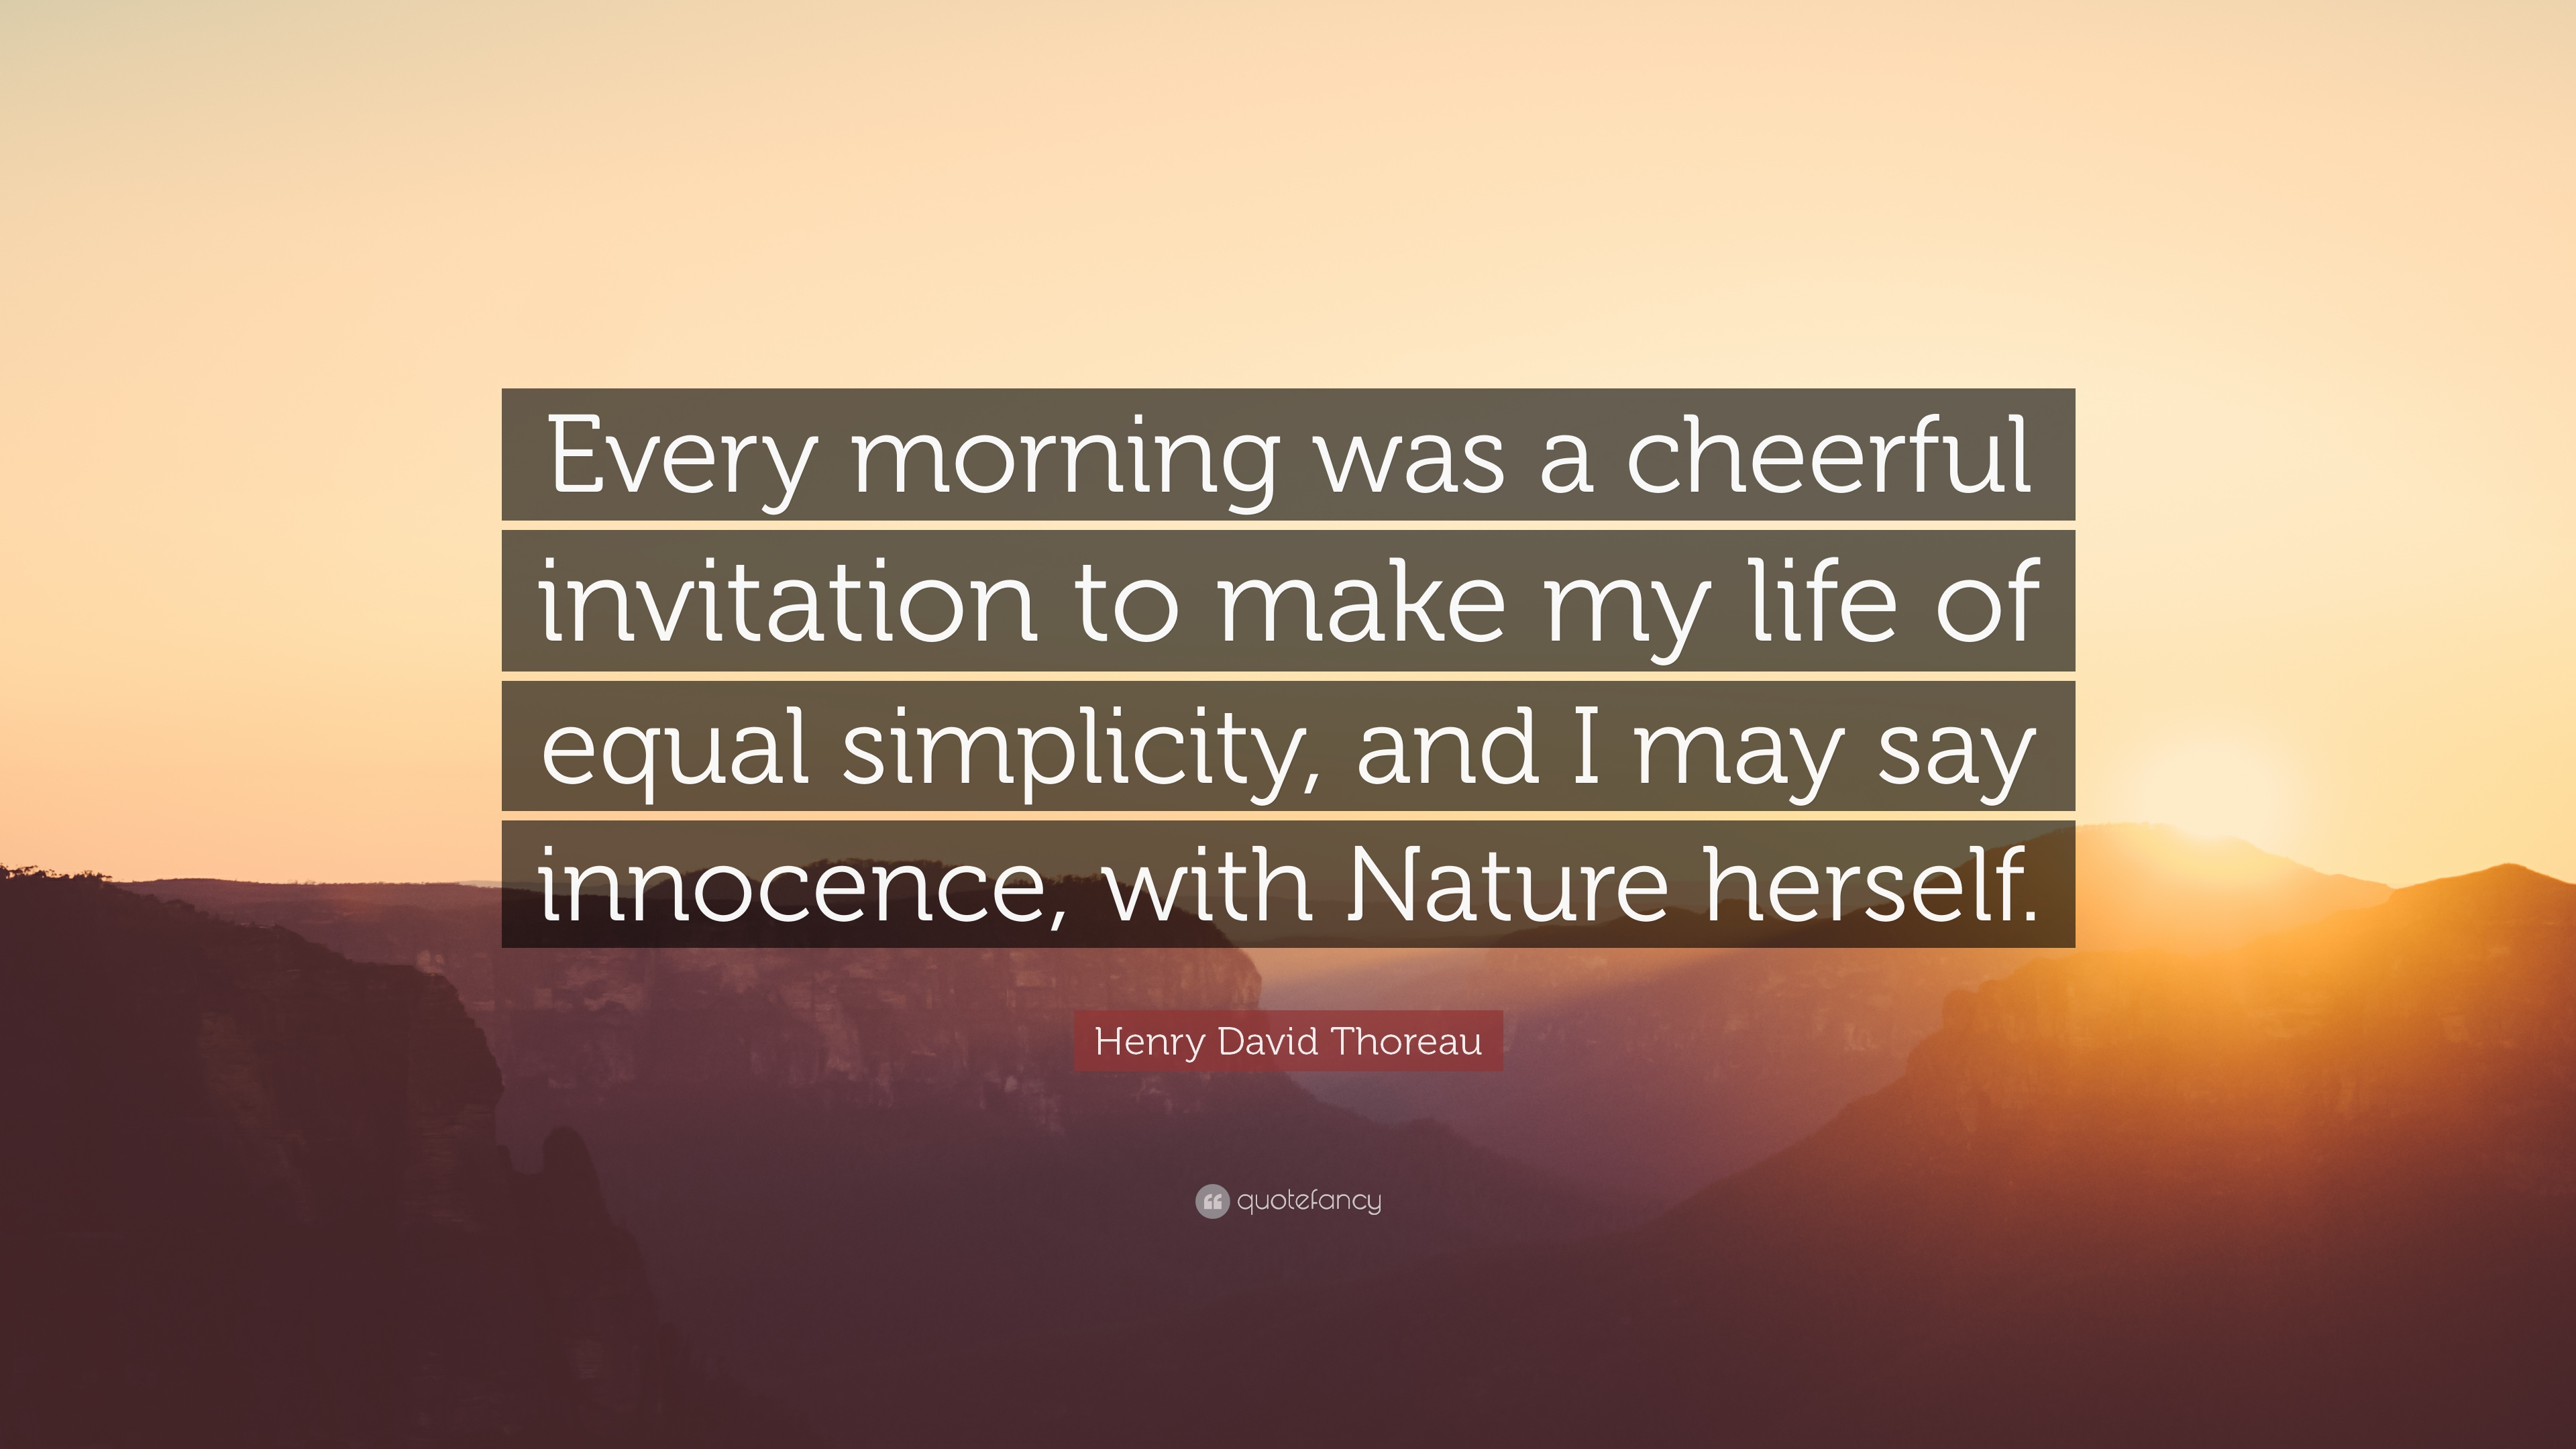 Henry David Thoreau Quote Every Morning Was A Cheerful Invitation